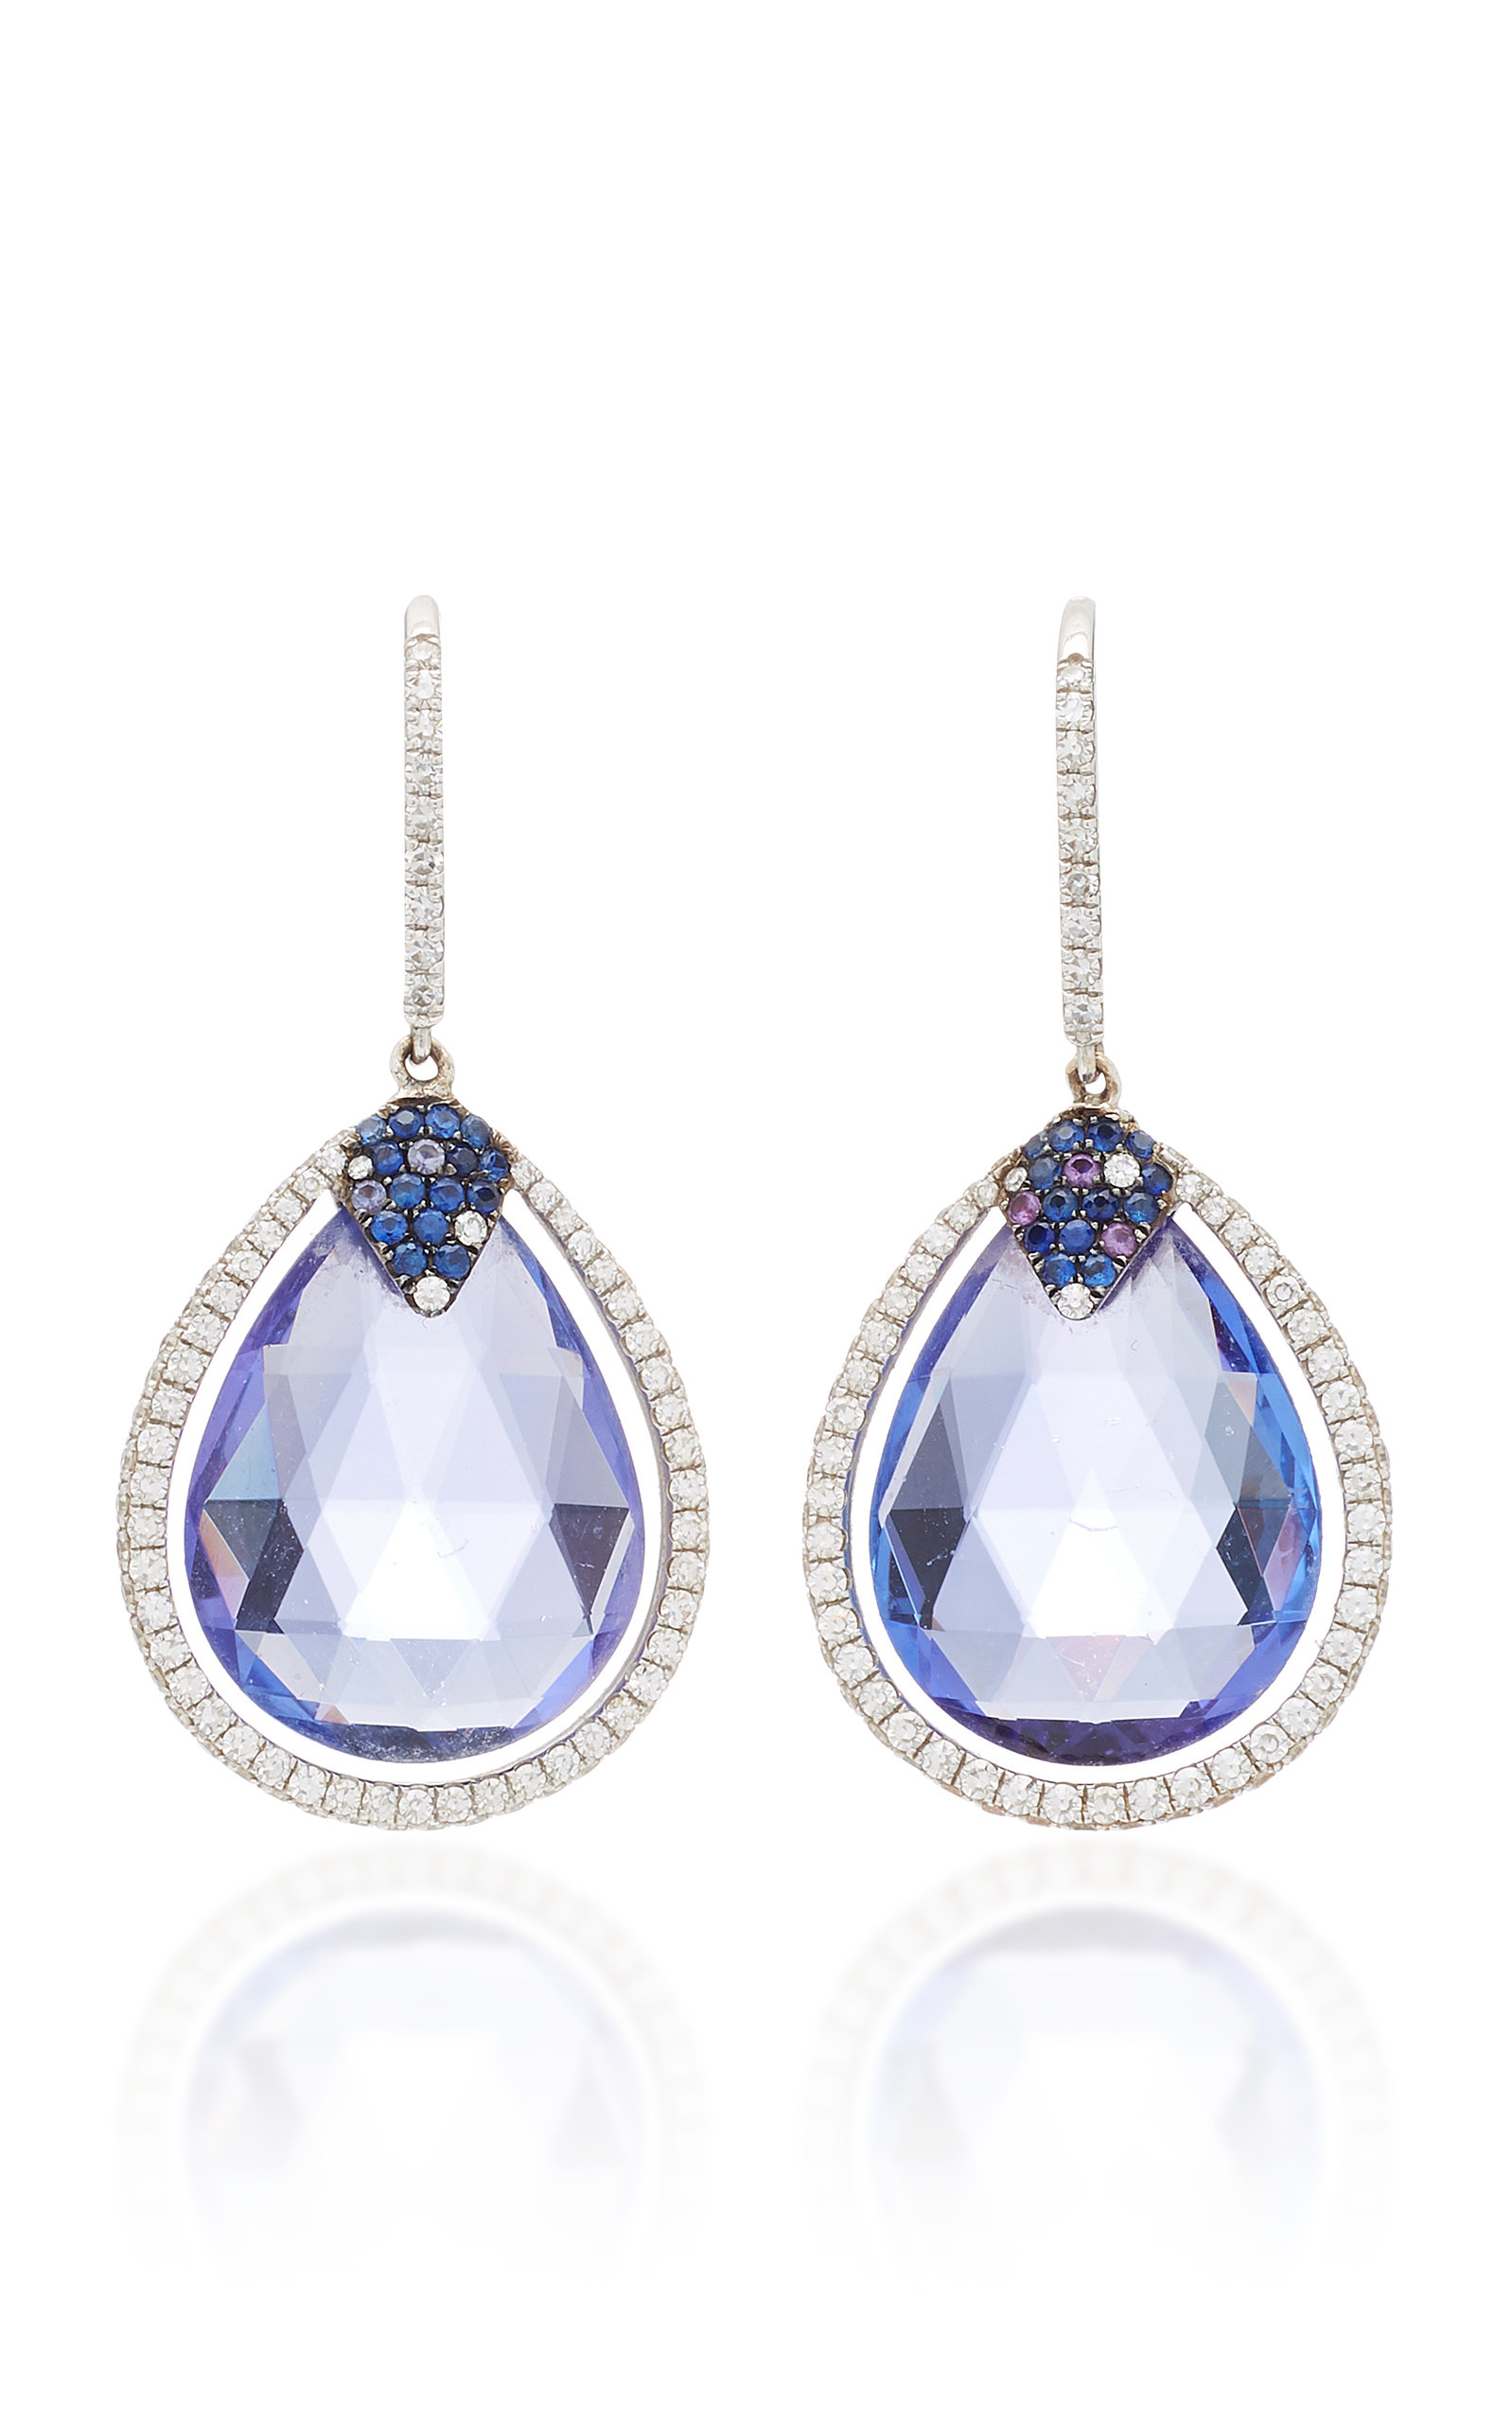 sapphire earrings blue sapphires briolette round diamonds briolettes pin with